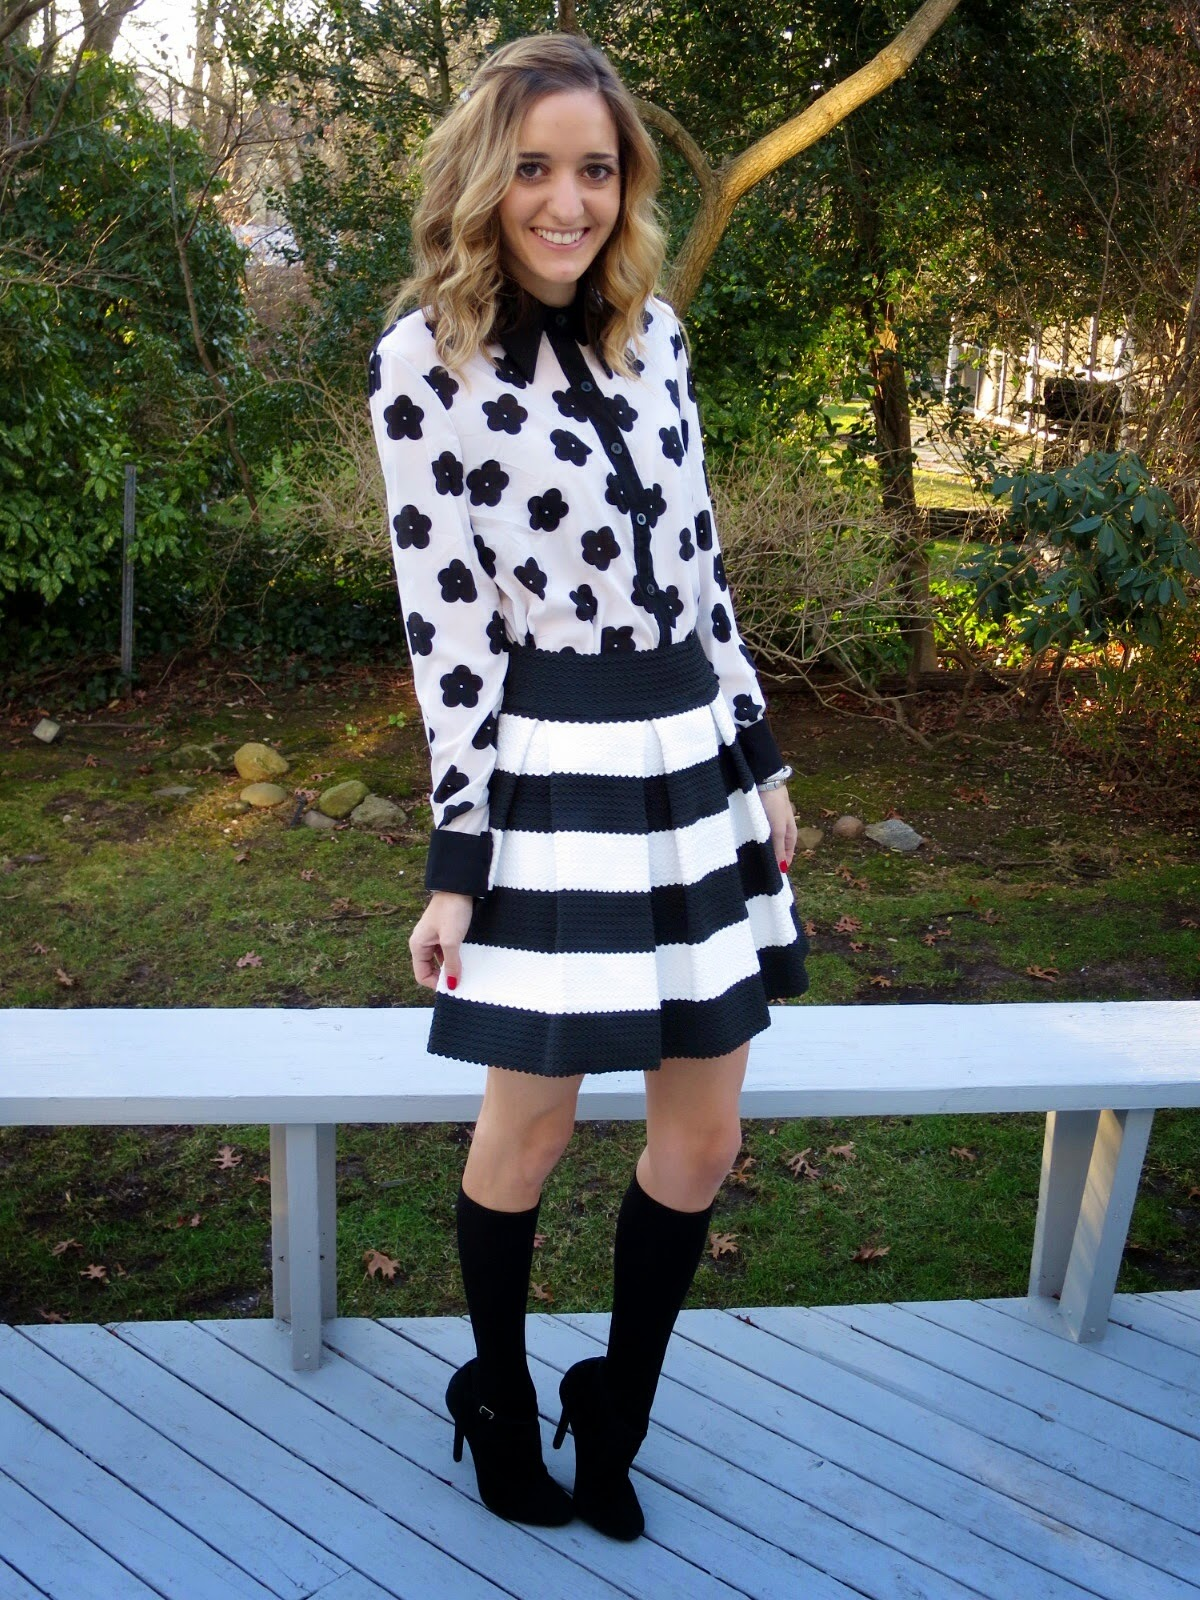 black & white pattern outfit